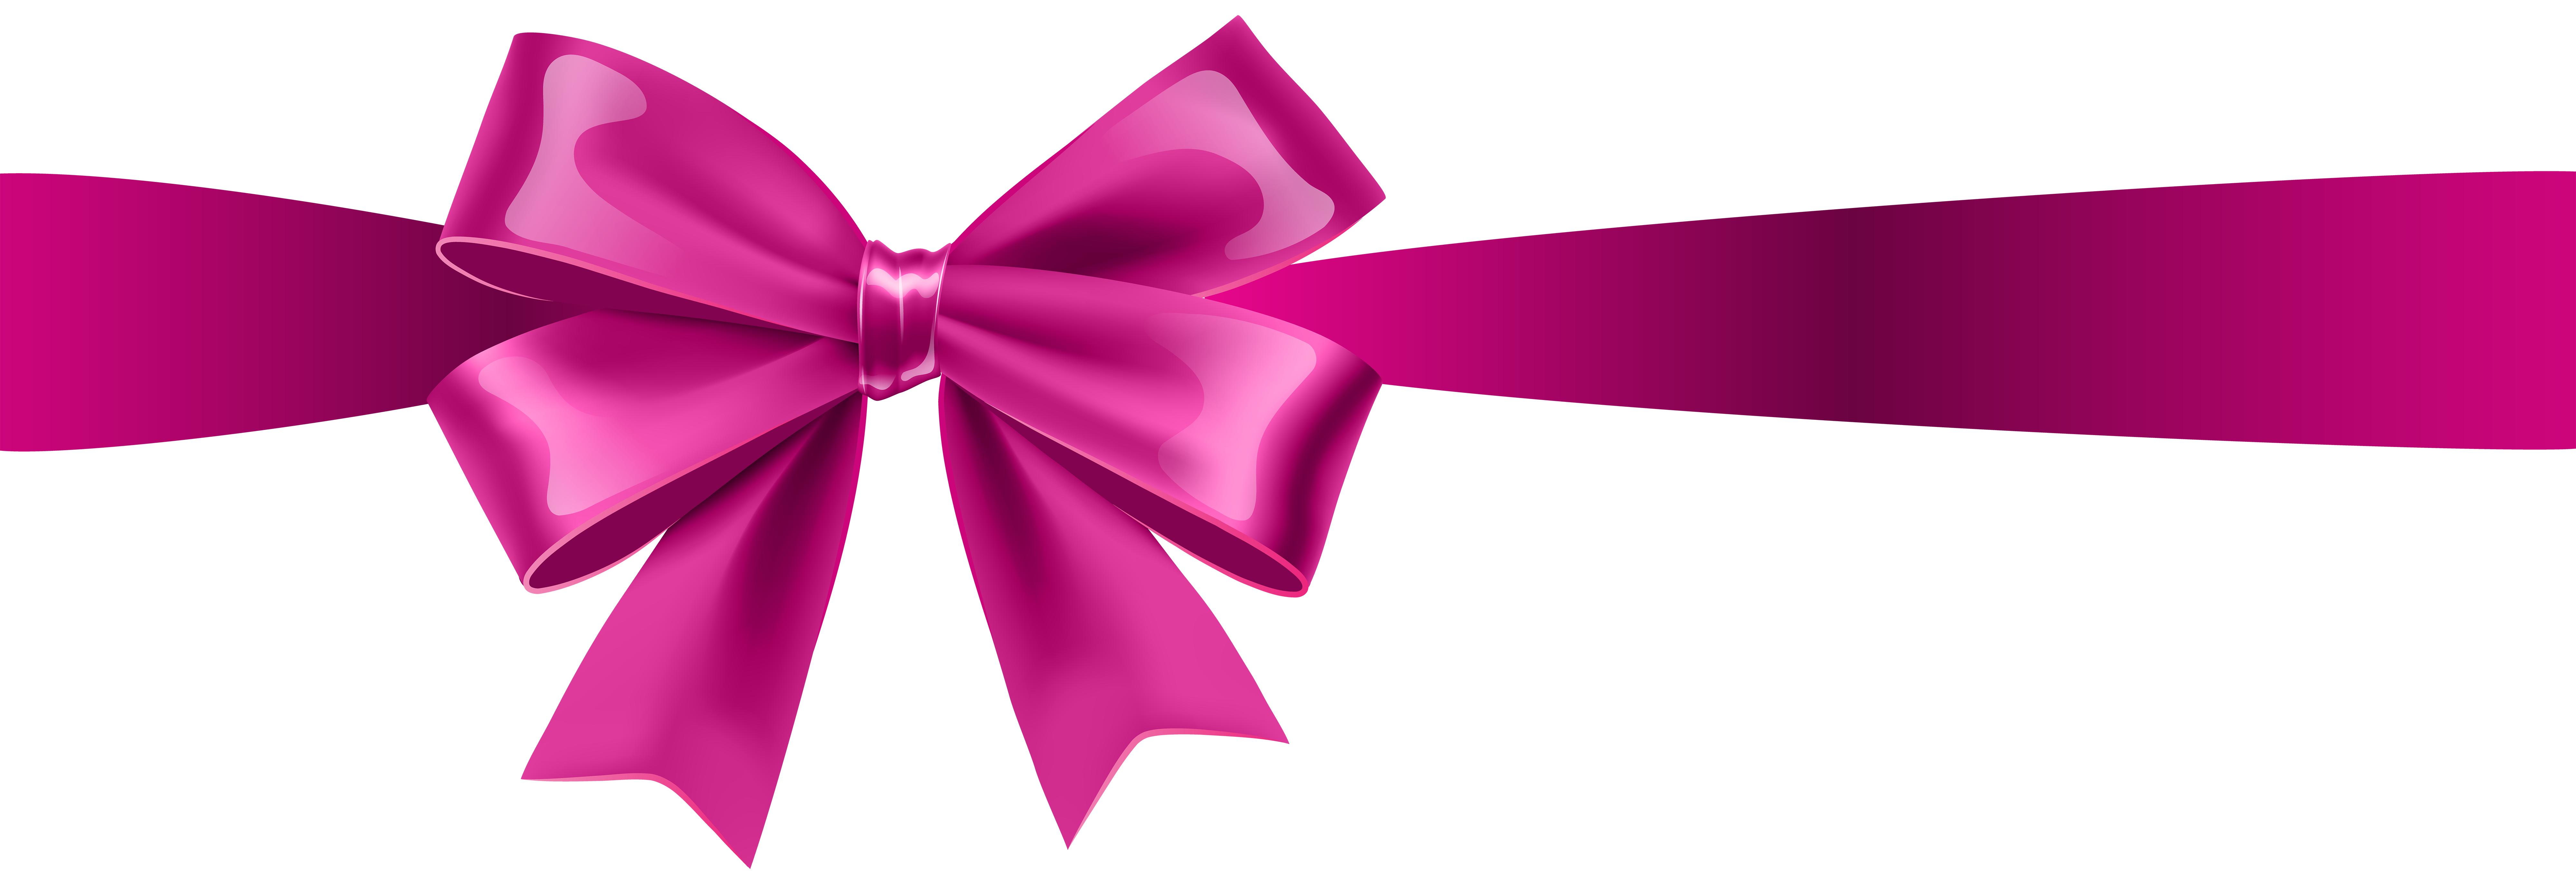 Pink Bow Transparent Clip Art Gallery Yopriceville High Quality Images And Transparent Png Free Clipart Free Clip Art Pink Bow Clip Art